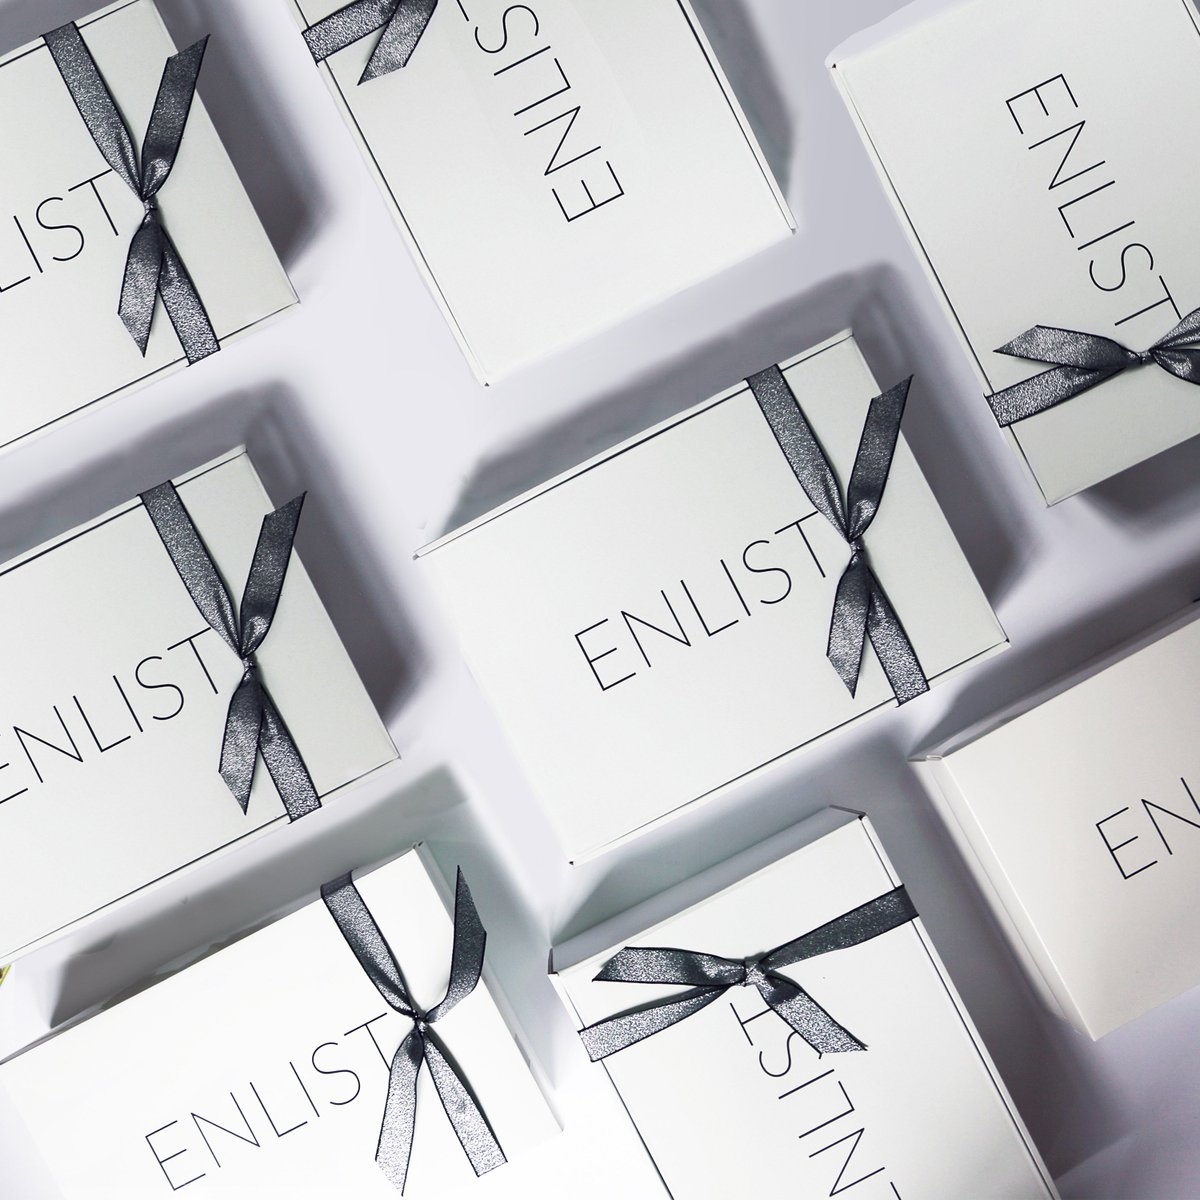 Do you have Christmas all wrapped up - shop last minute gifts now. Order before 6PM tonight to guarantee delivery before Christmas. Shop gifts https://t.co/k3u5c8lITY https://t.co/Z81zTXGD2I